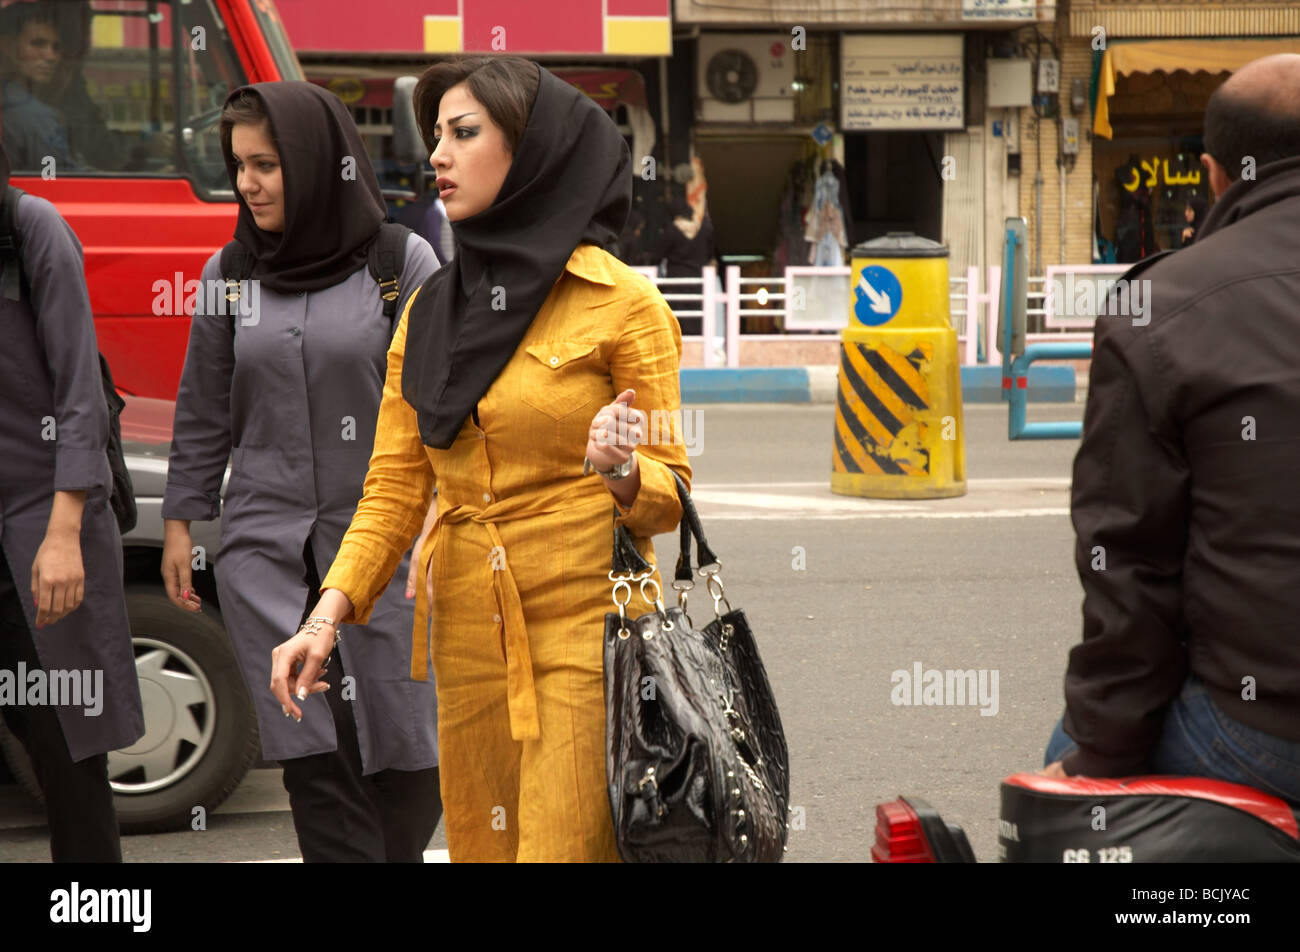 Young girl with makeup and compulsory hijab crossing the street in Tajrish, north of Tehran - Stock Image